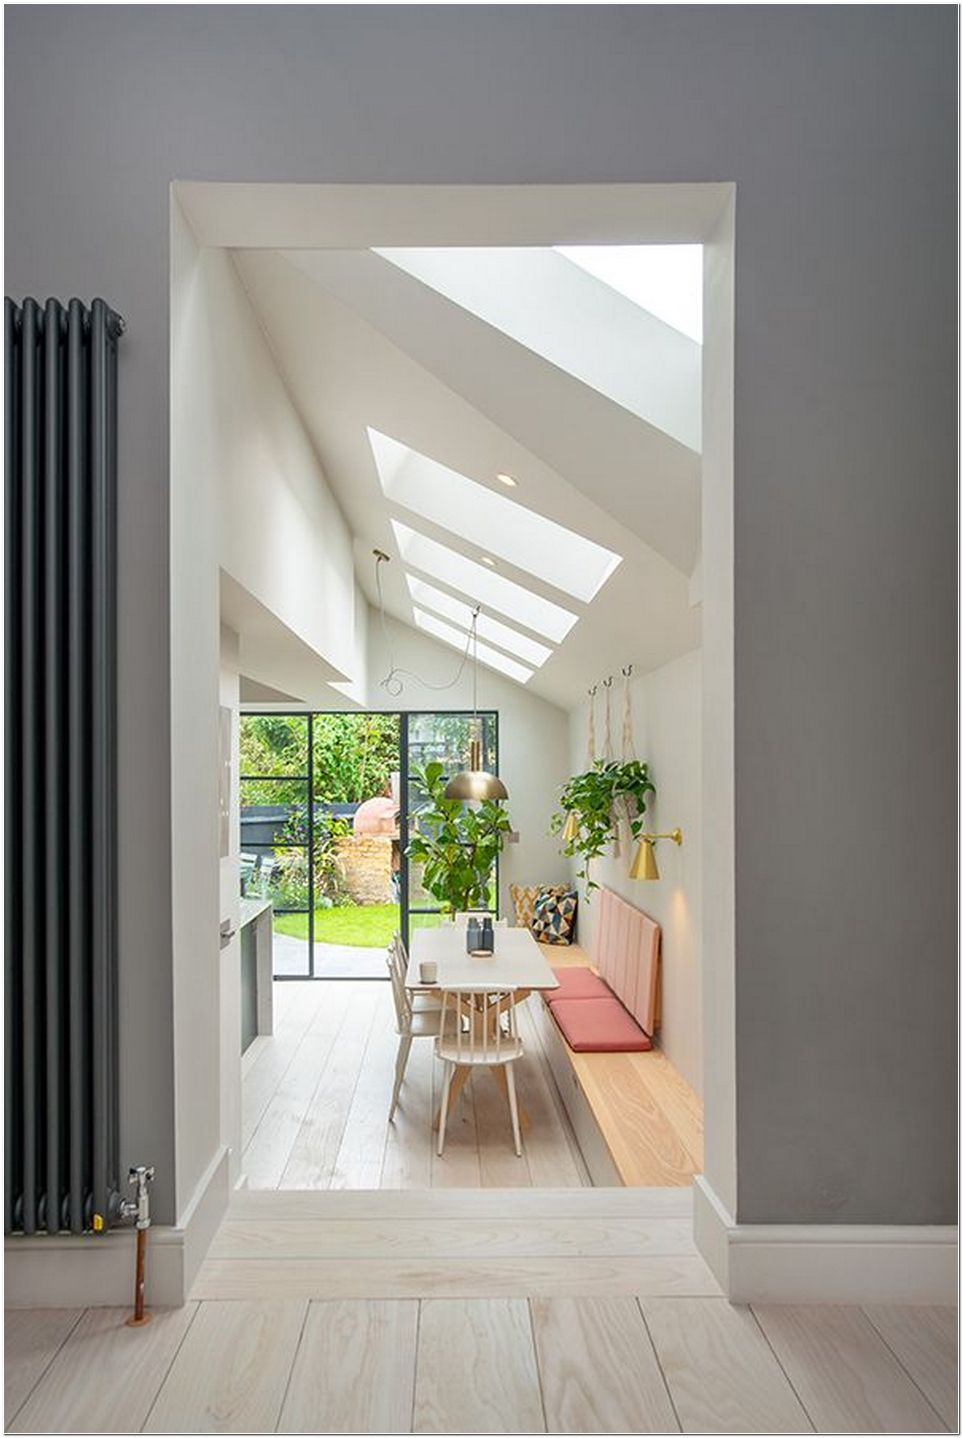 84+ top tips for creating a light filled house extension 7 #houseextensions 84+ top tips for creating a light filled house extension 7 - censiblehome #homedecorideas #houseextension #homedecorcreating